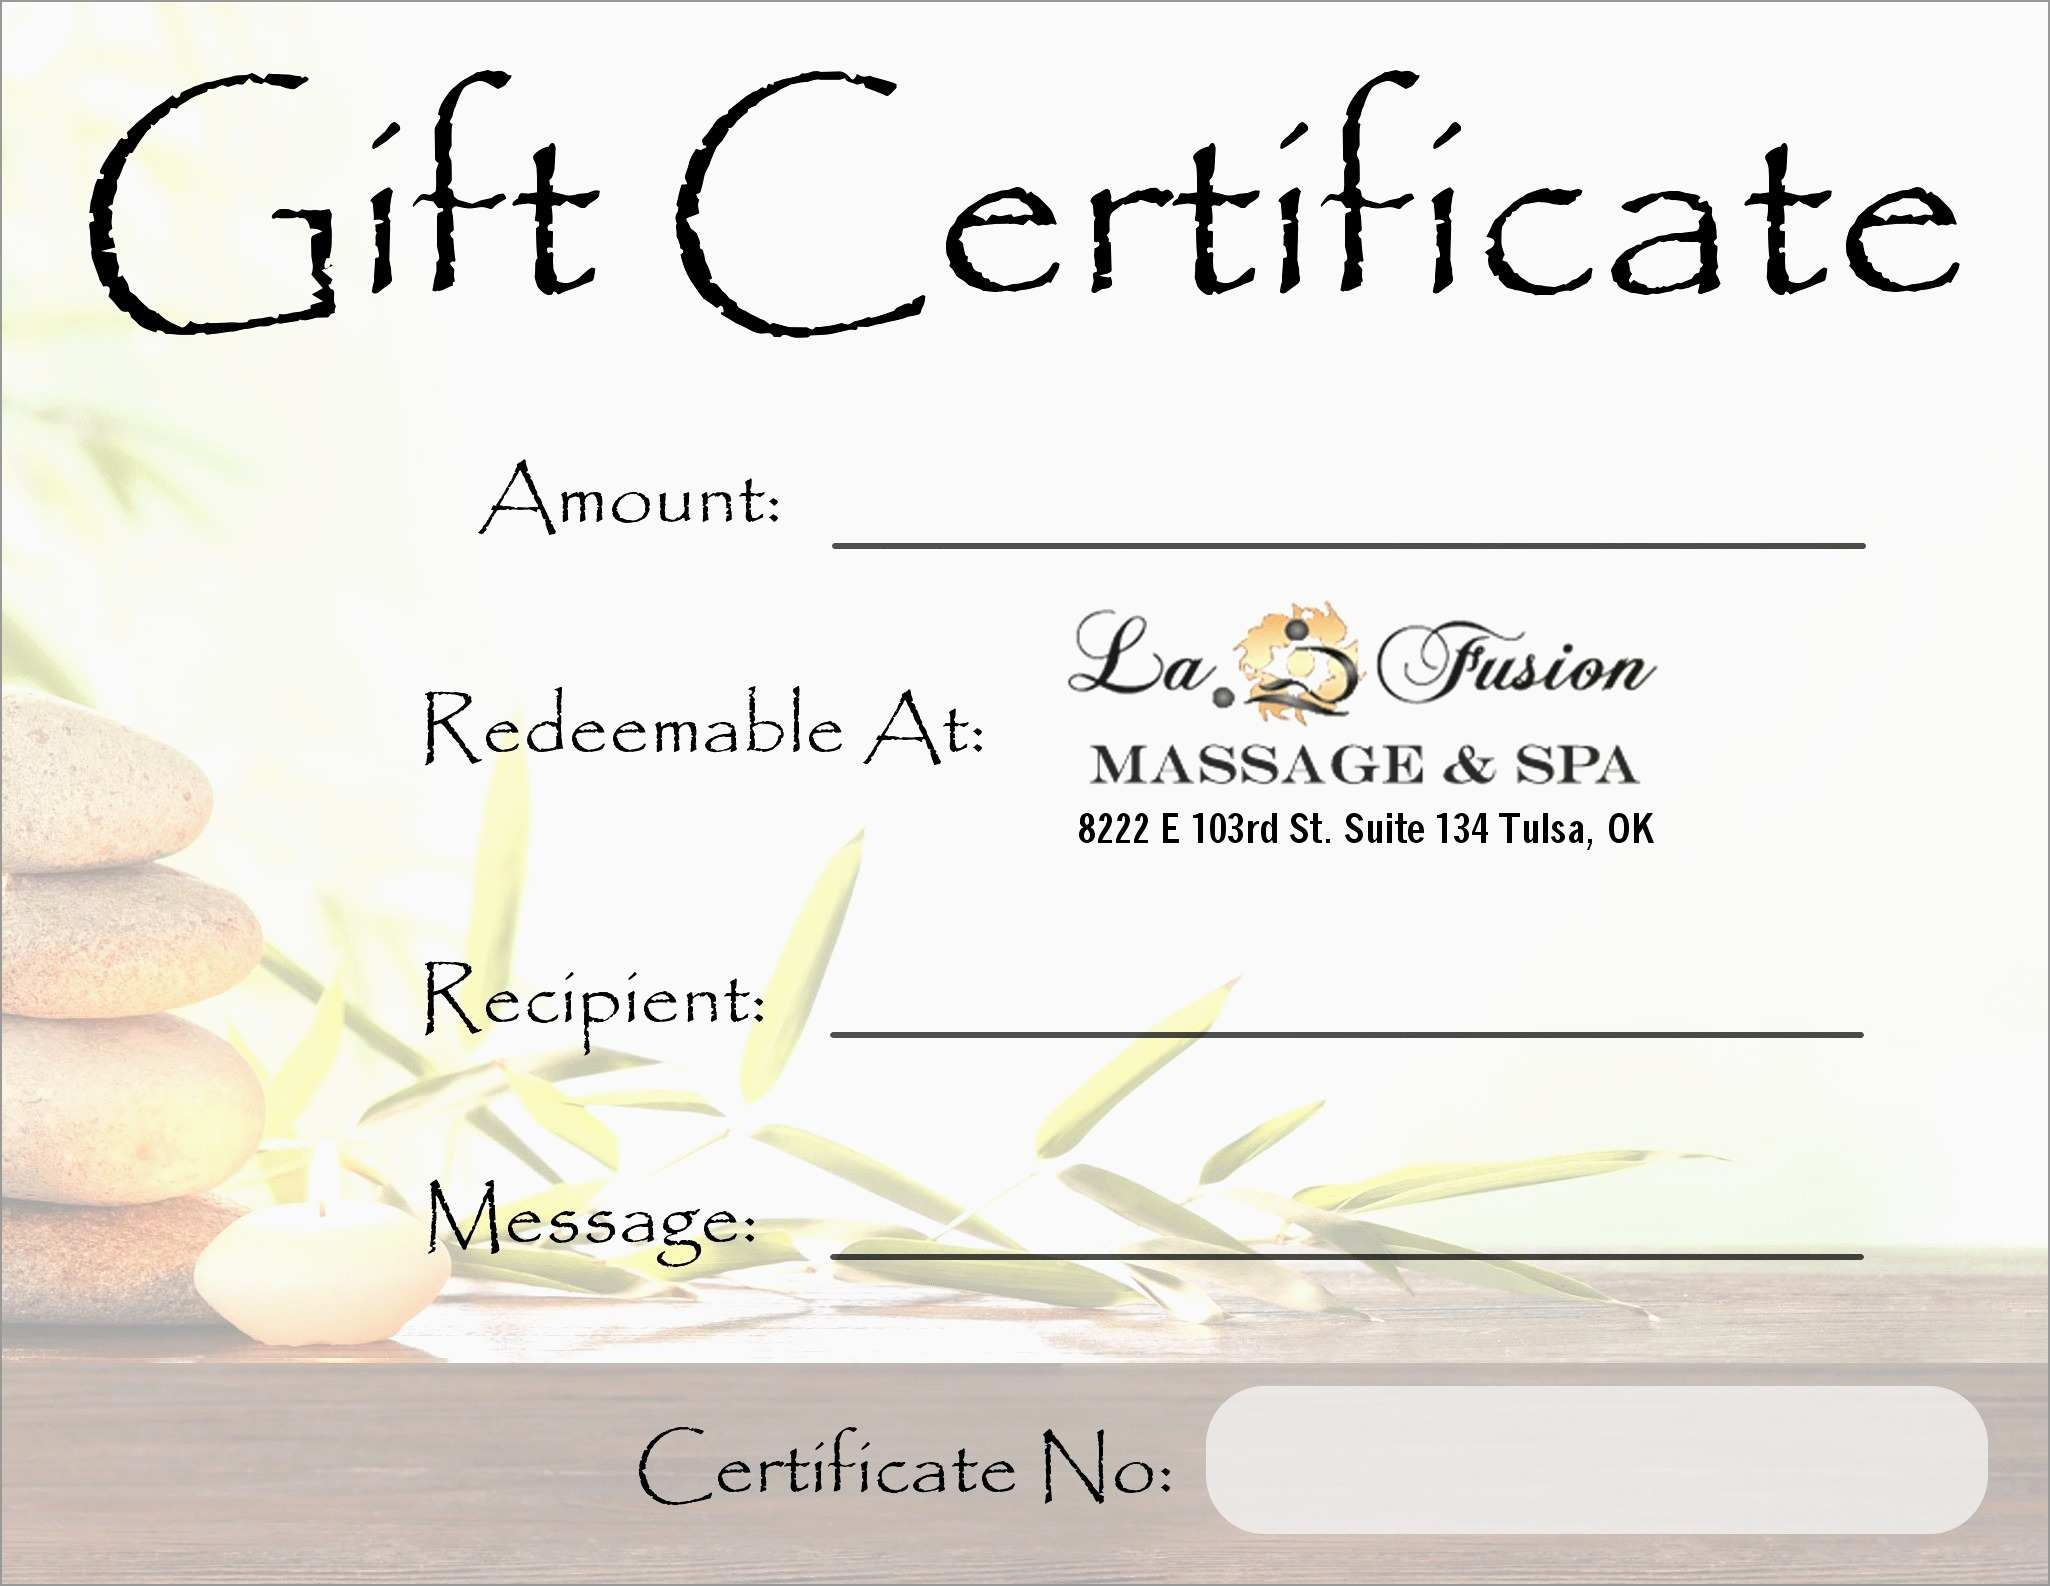 New Free Printable Massage Gift Certificate Templates   Best Of Template - Free Printable Gift Certificate Templates For Massage